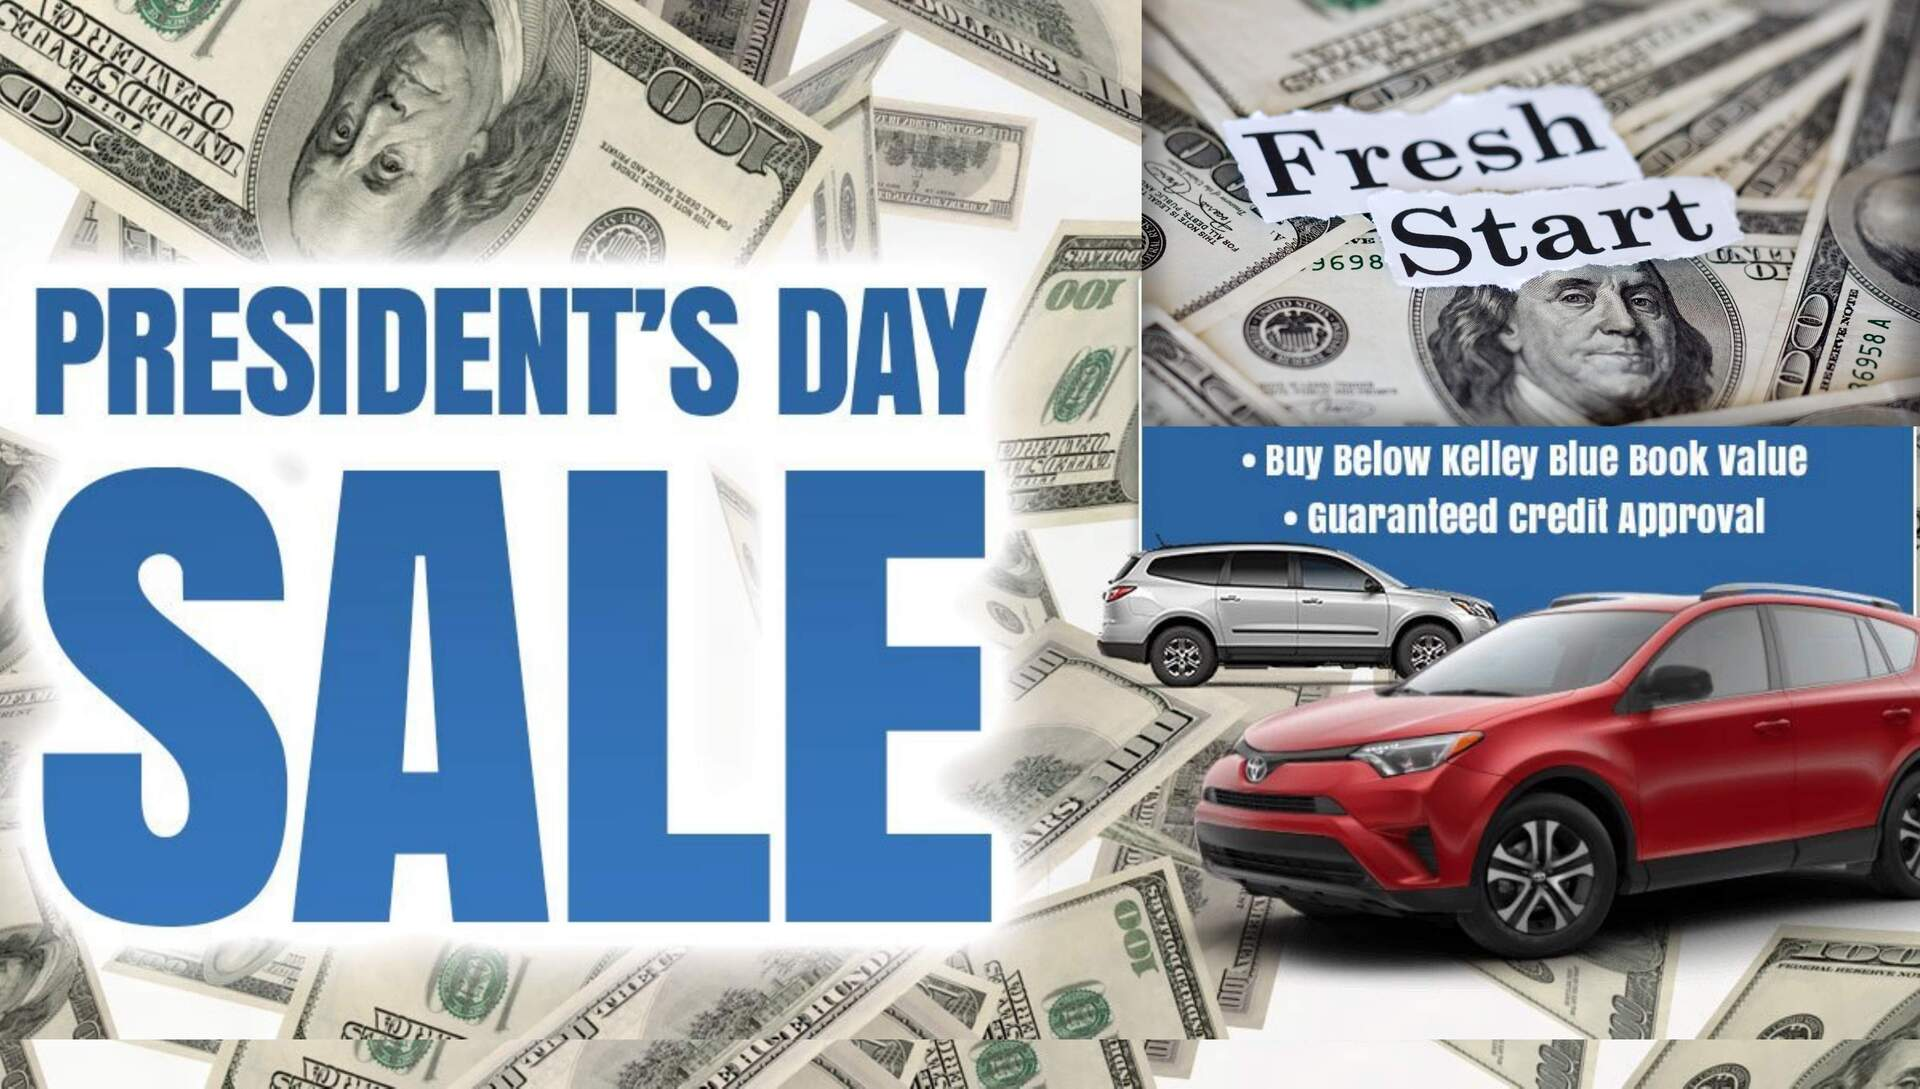 2018 President's Day Sale at NJ Auto Auction